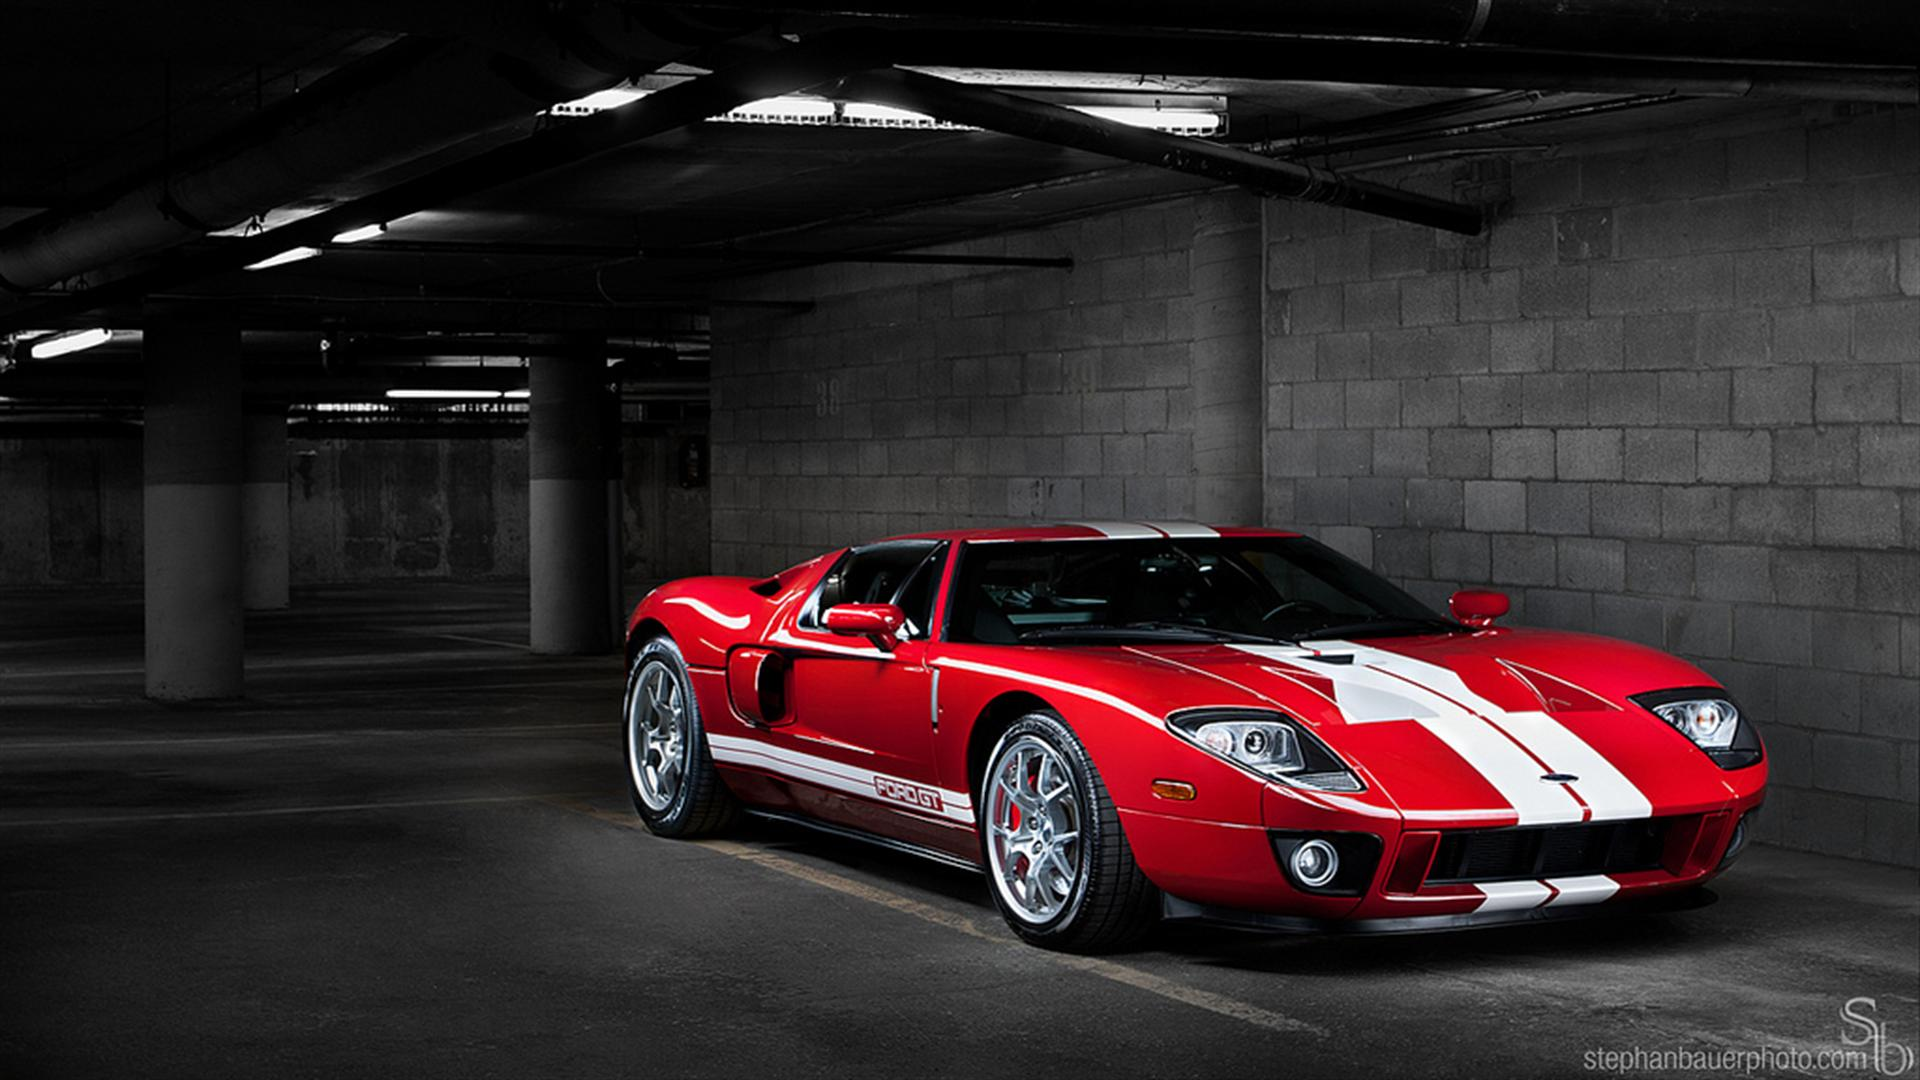 Ford GT Wallpaper and Picture   pic 14 1080p HD High Resolution 1920x1080